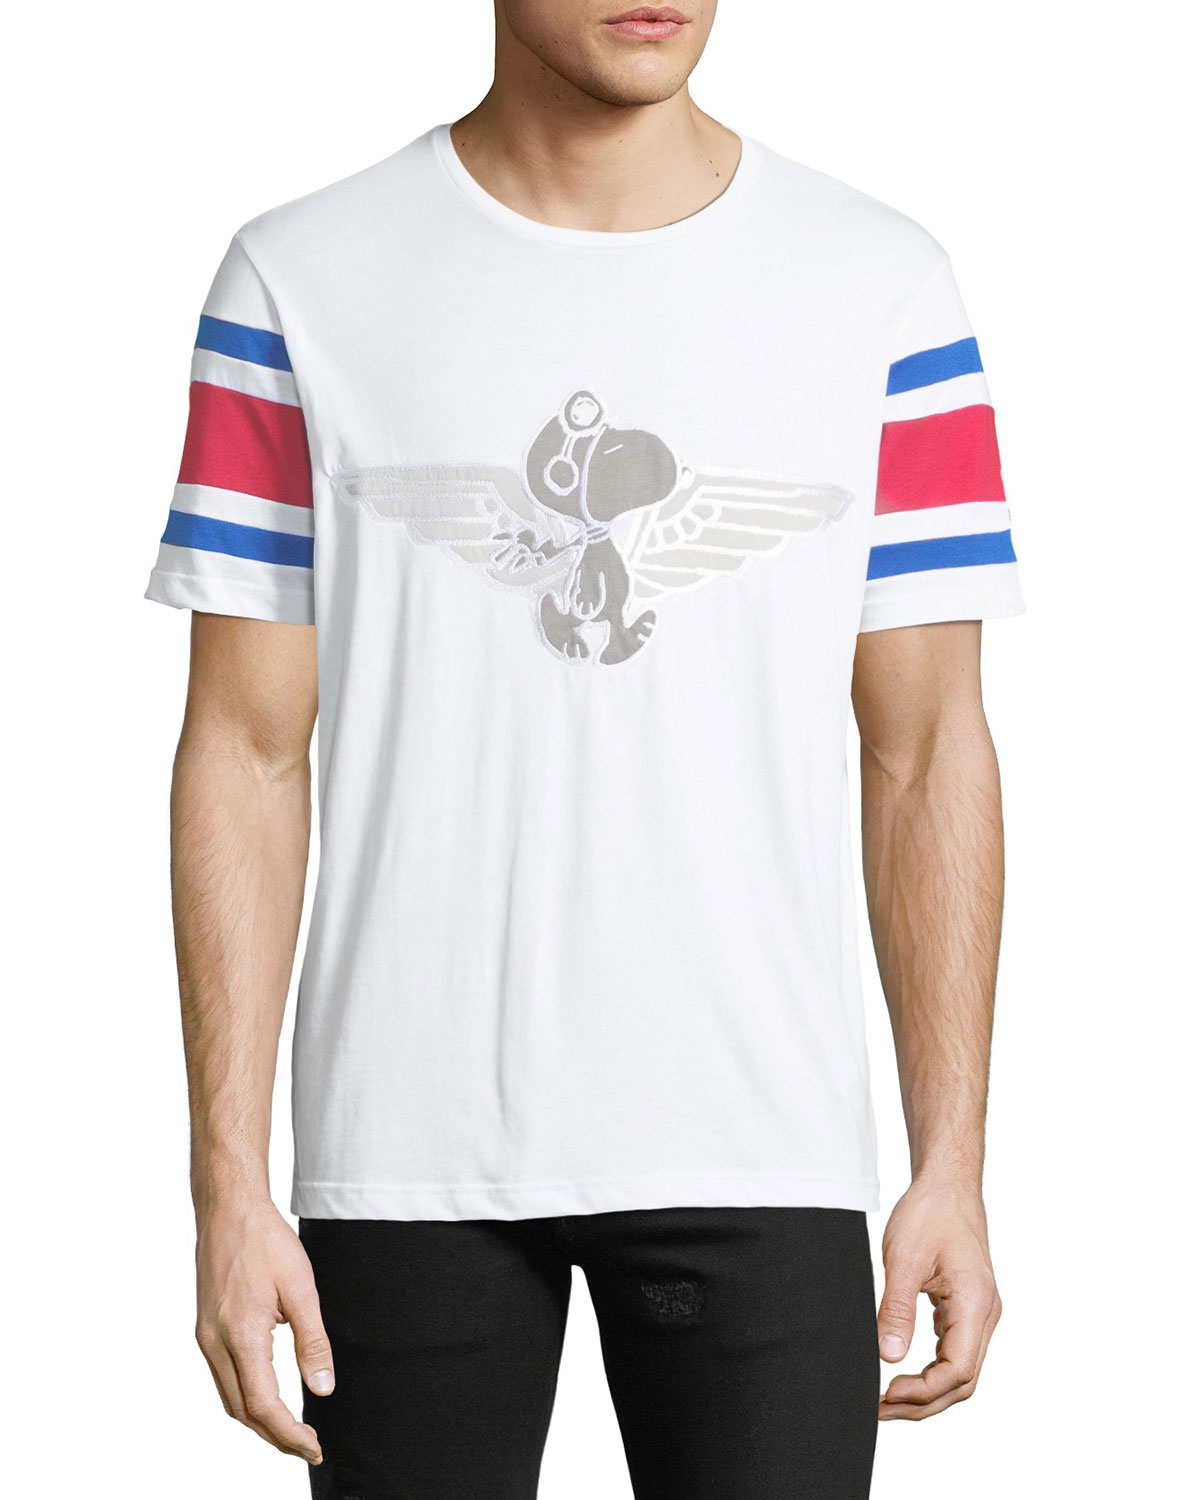 a8b3c73bc Iceberg Men's Peanuts Snoopy Flight Graphic T-Shirt | Neiman Marcus